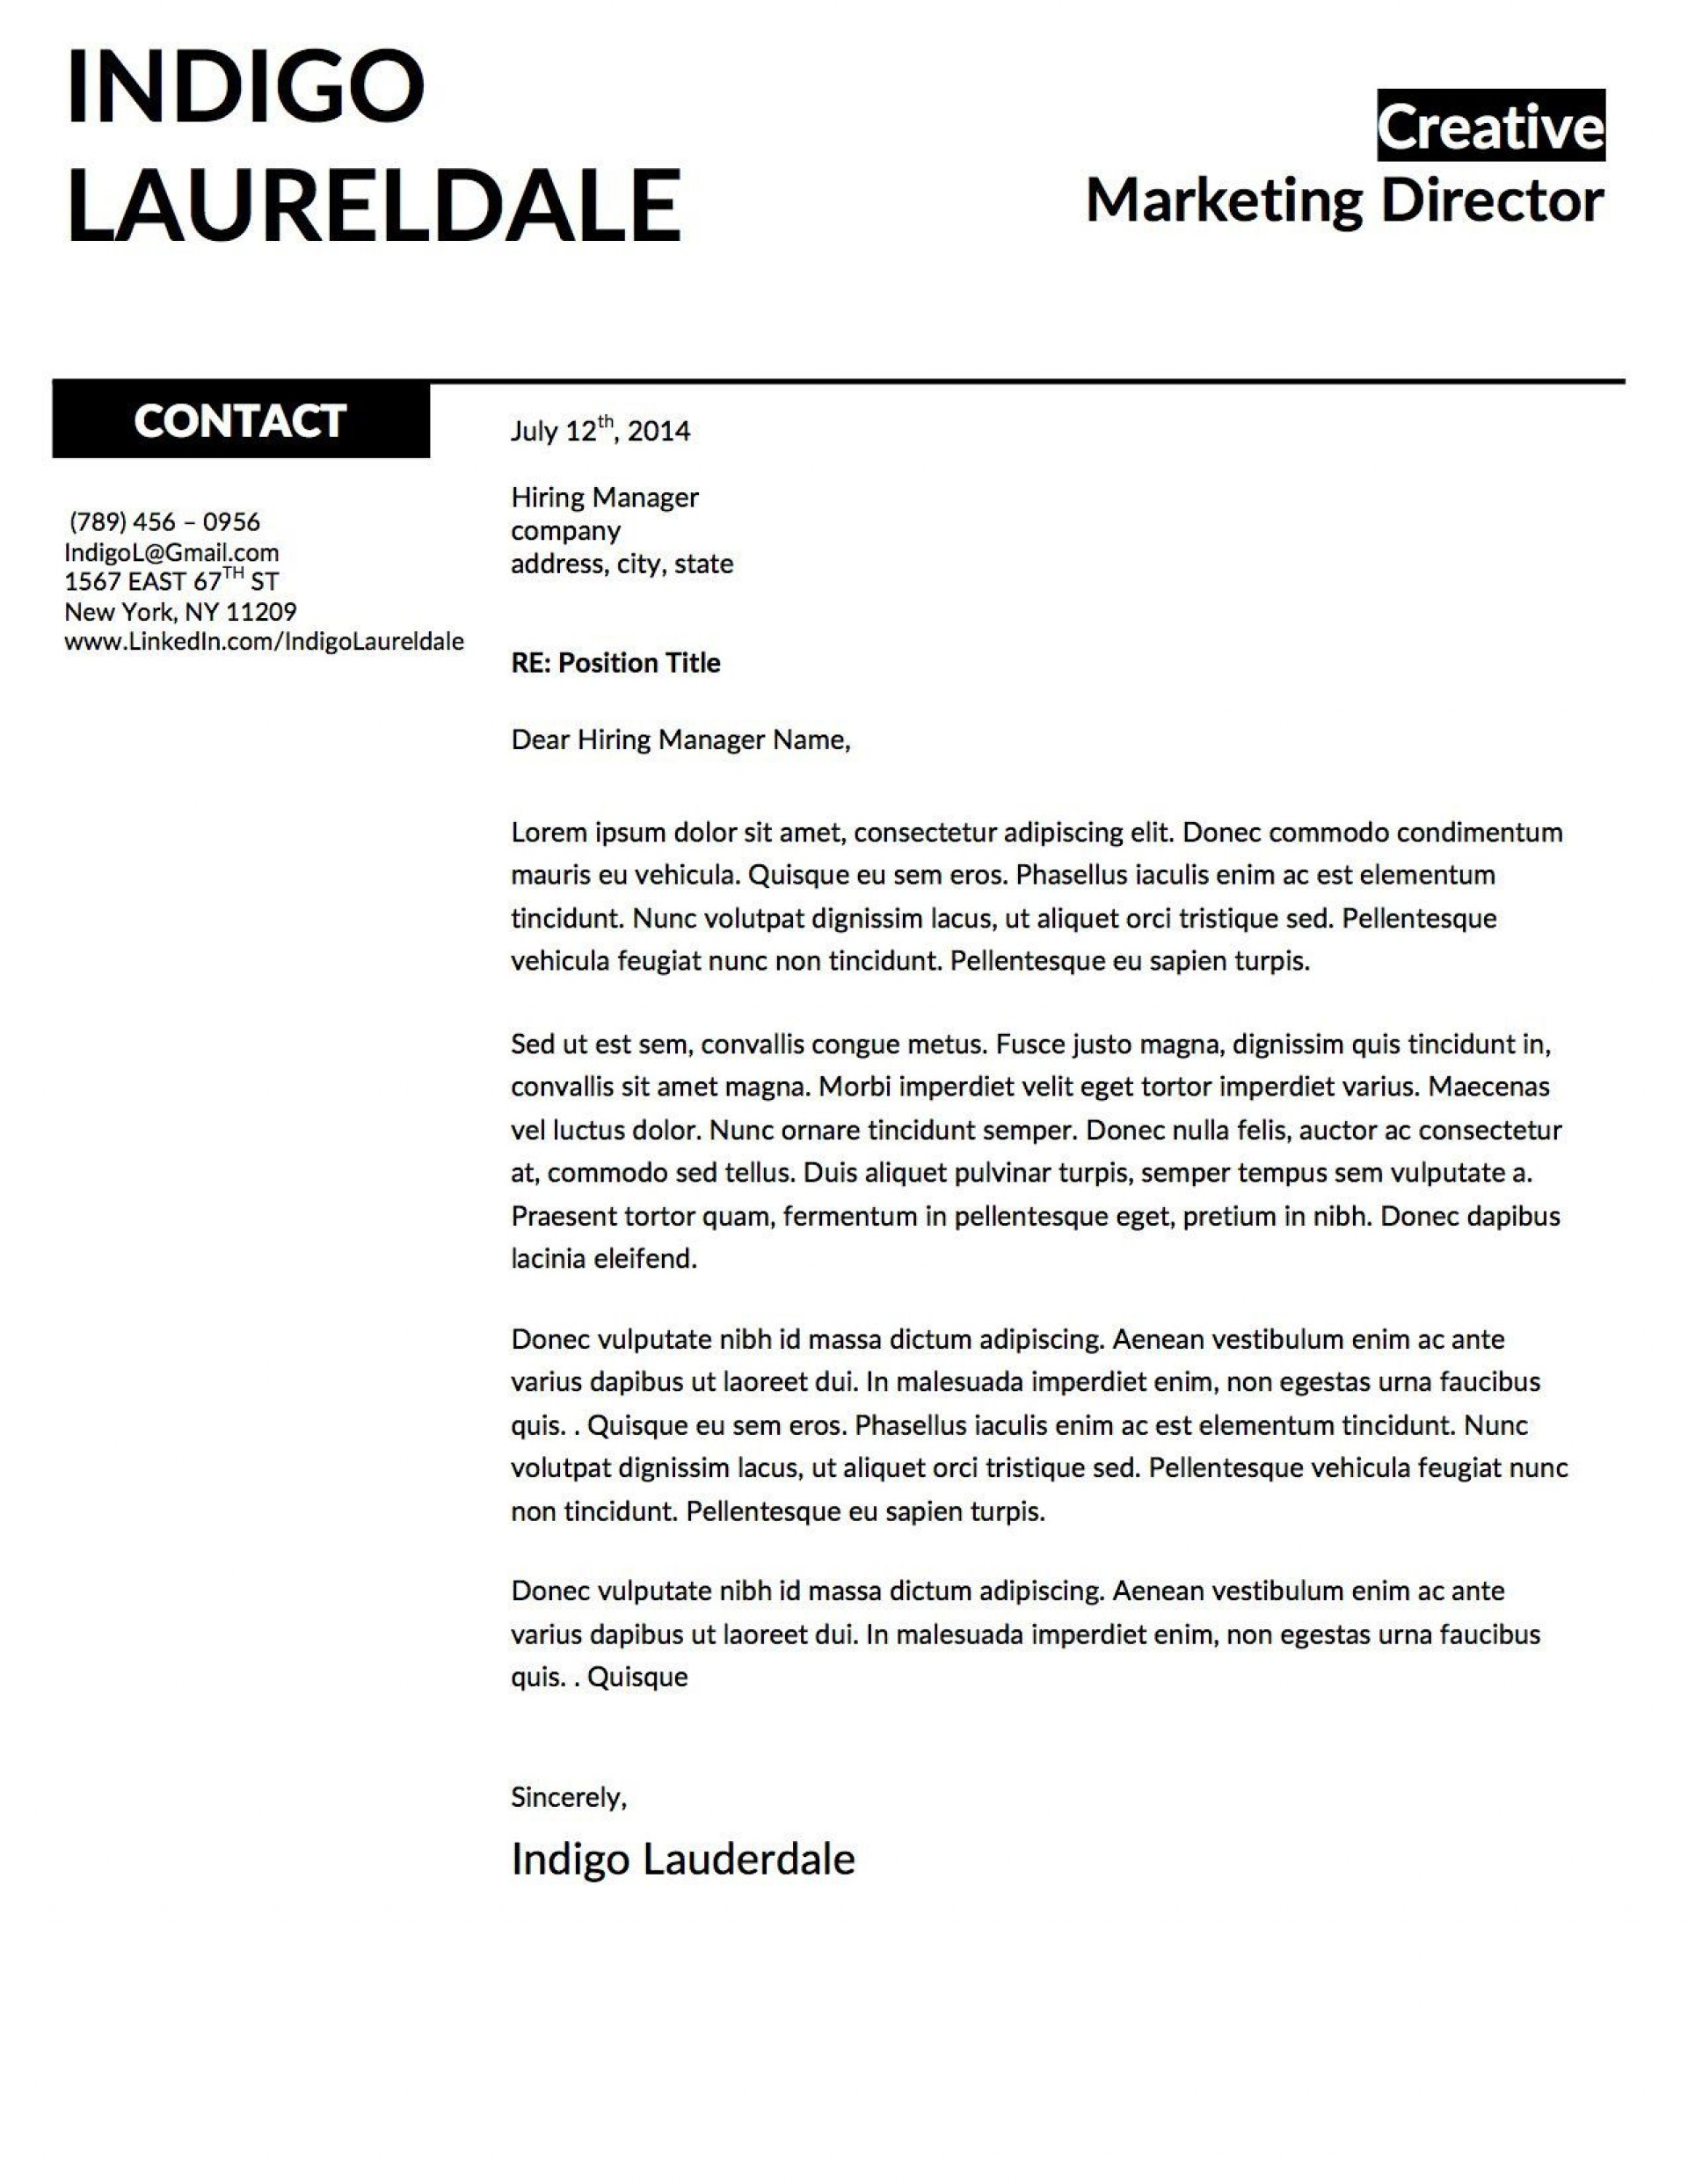 001 Unforgettable Window Resume Cover Letter Template High Resolution  Templates1920